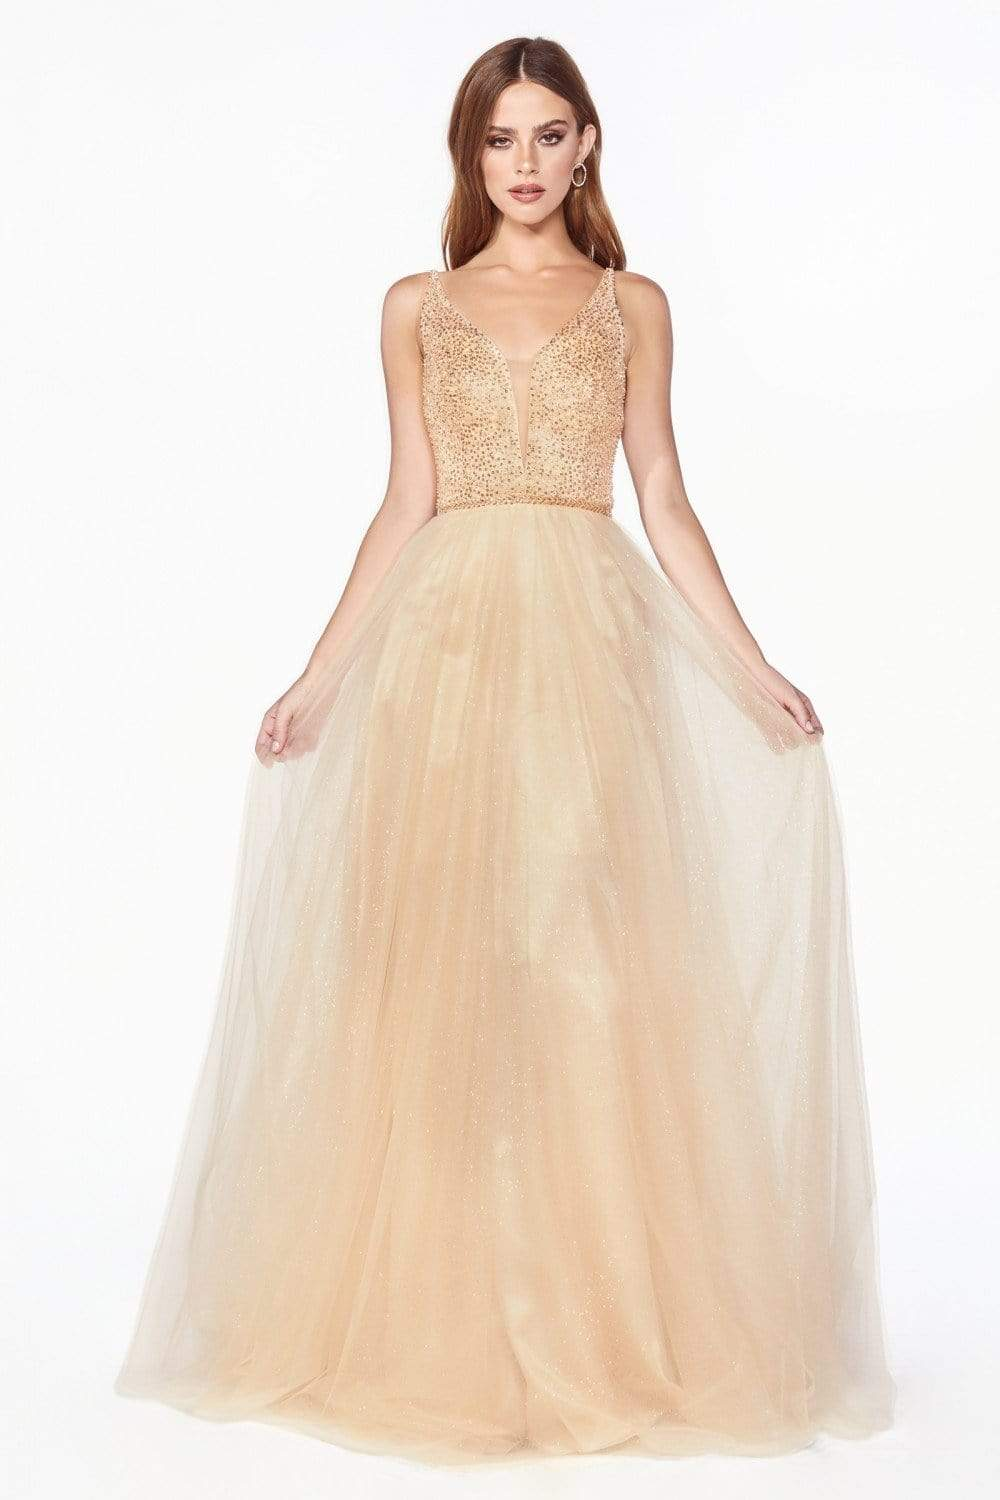 Cinderella Divine - CD0150 Beaded Sleeveless Glitter Tulle A-Line Dress Prom Dresses XXS / Champagne